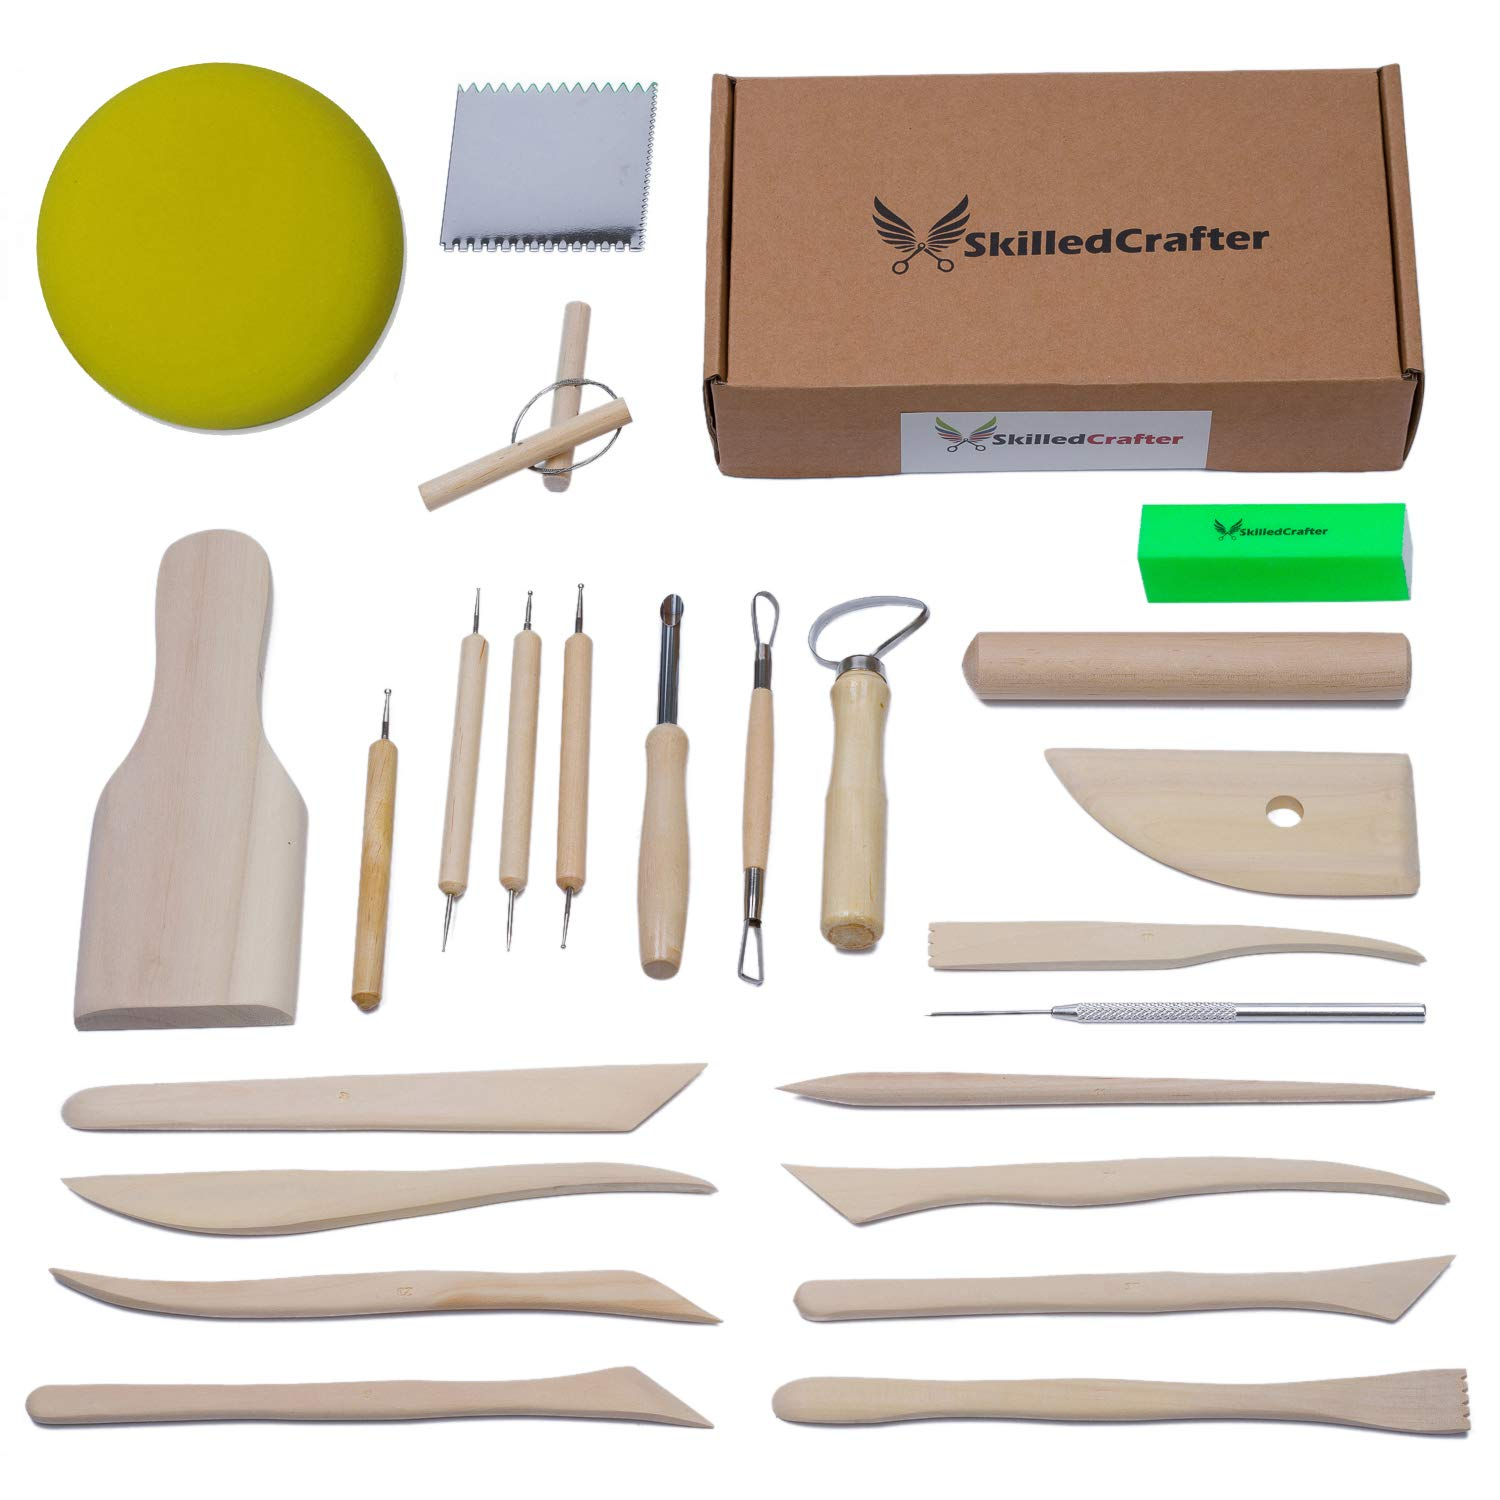 Skilled Crafter Clay Tools Set. Premium Quality Detailing, Modeling, Sculpting & Pottery Wheel Tools. 22 Piece Wood/Metal Kit. FREE Sponge! Deluxe Set Best for Potters/Artists of Ceramic, Sculpey etc 4336843718